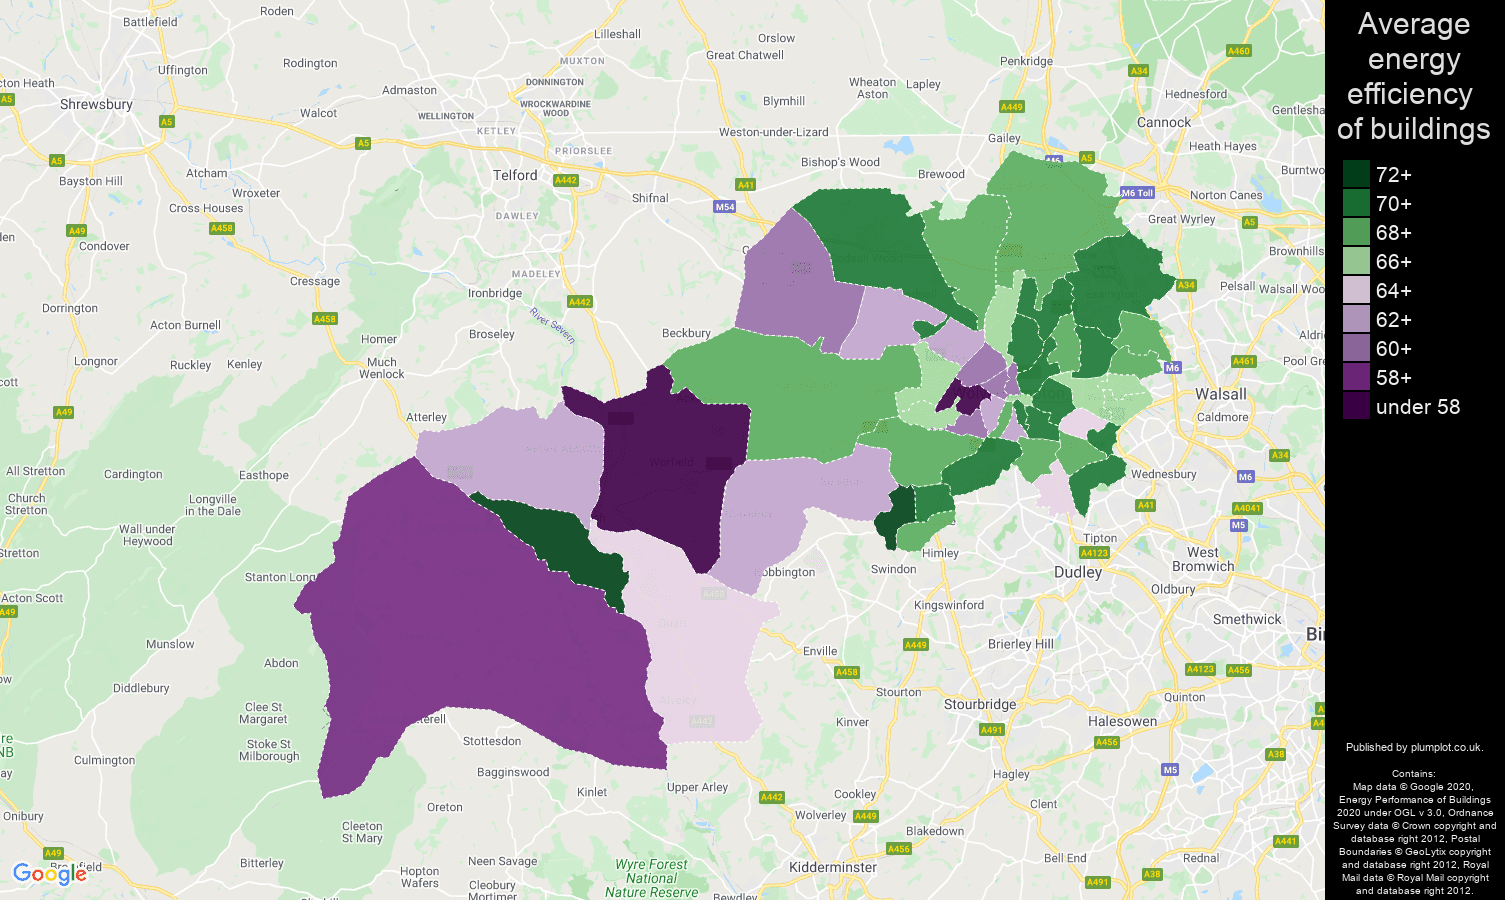 Wolverhampton map of energy efficiency of flats